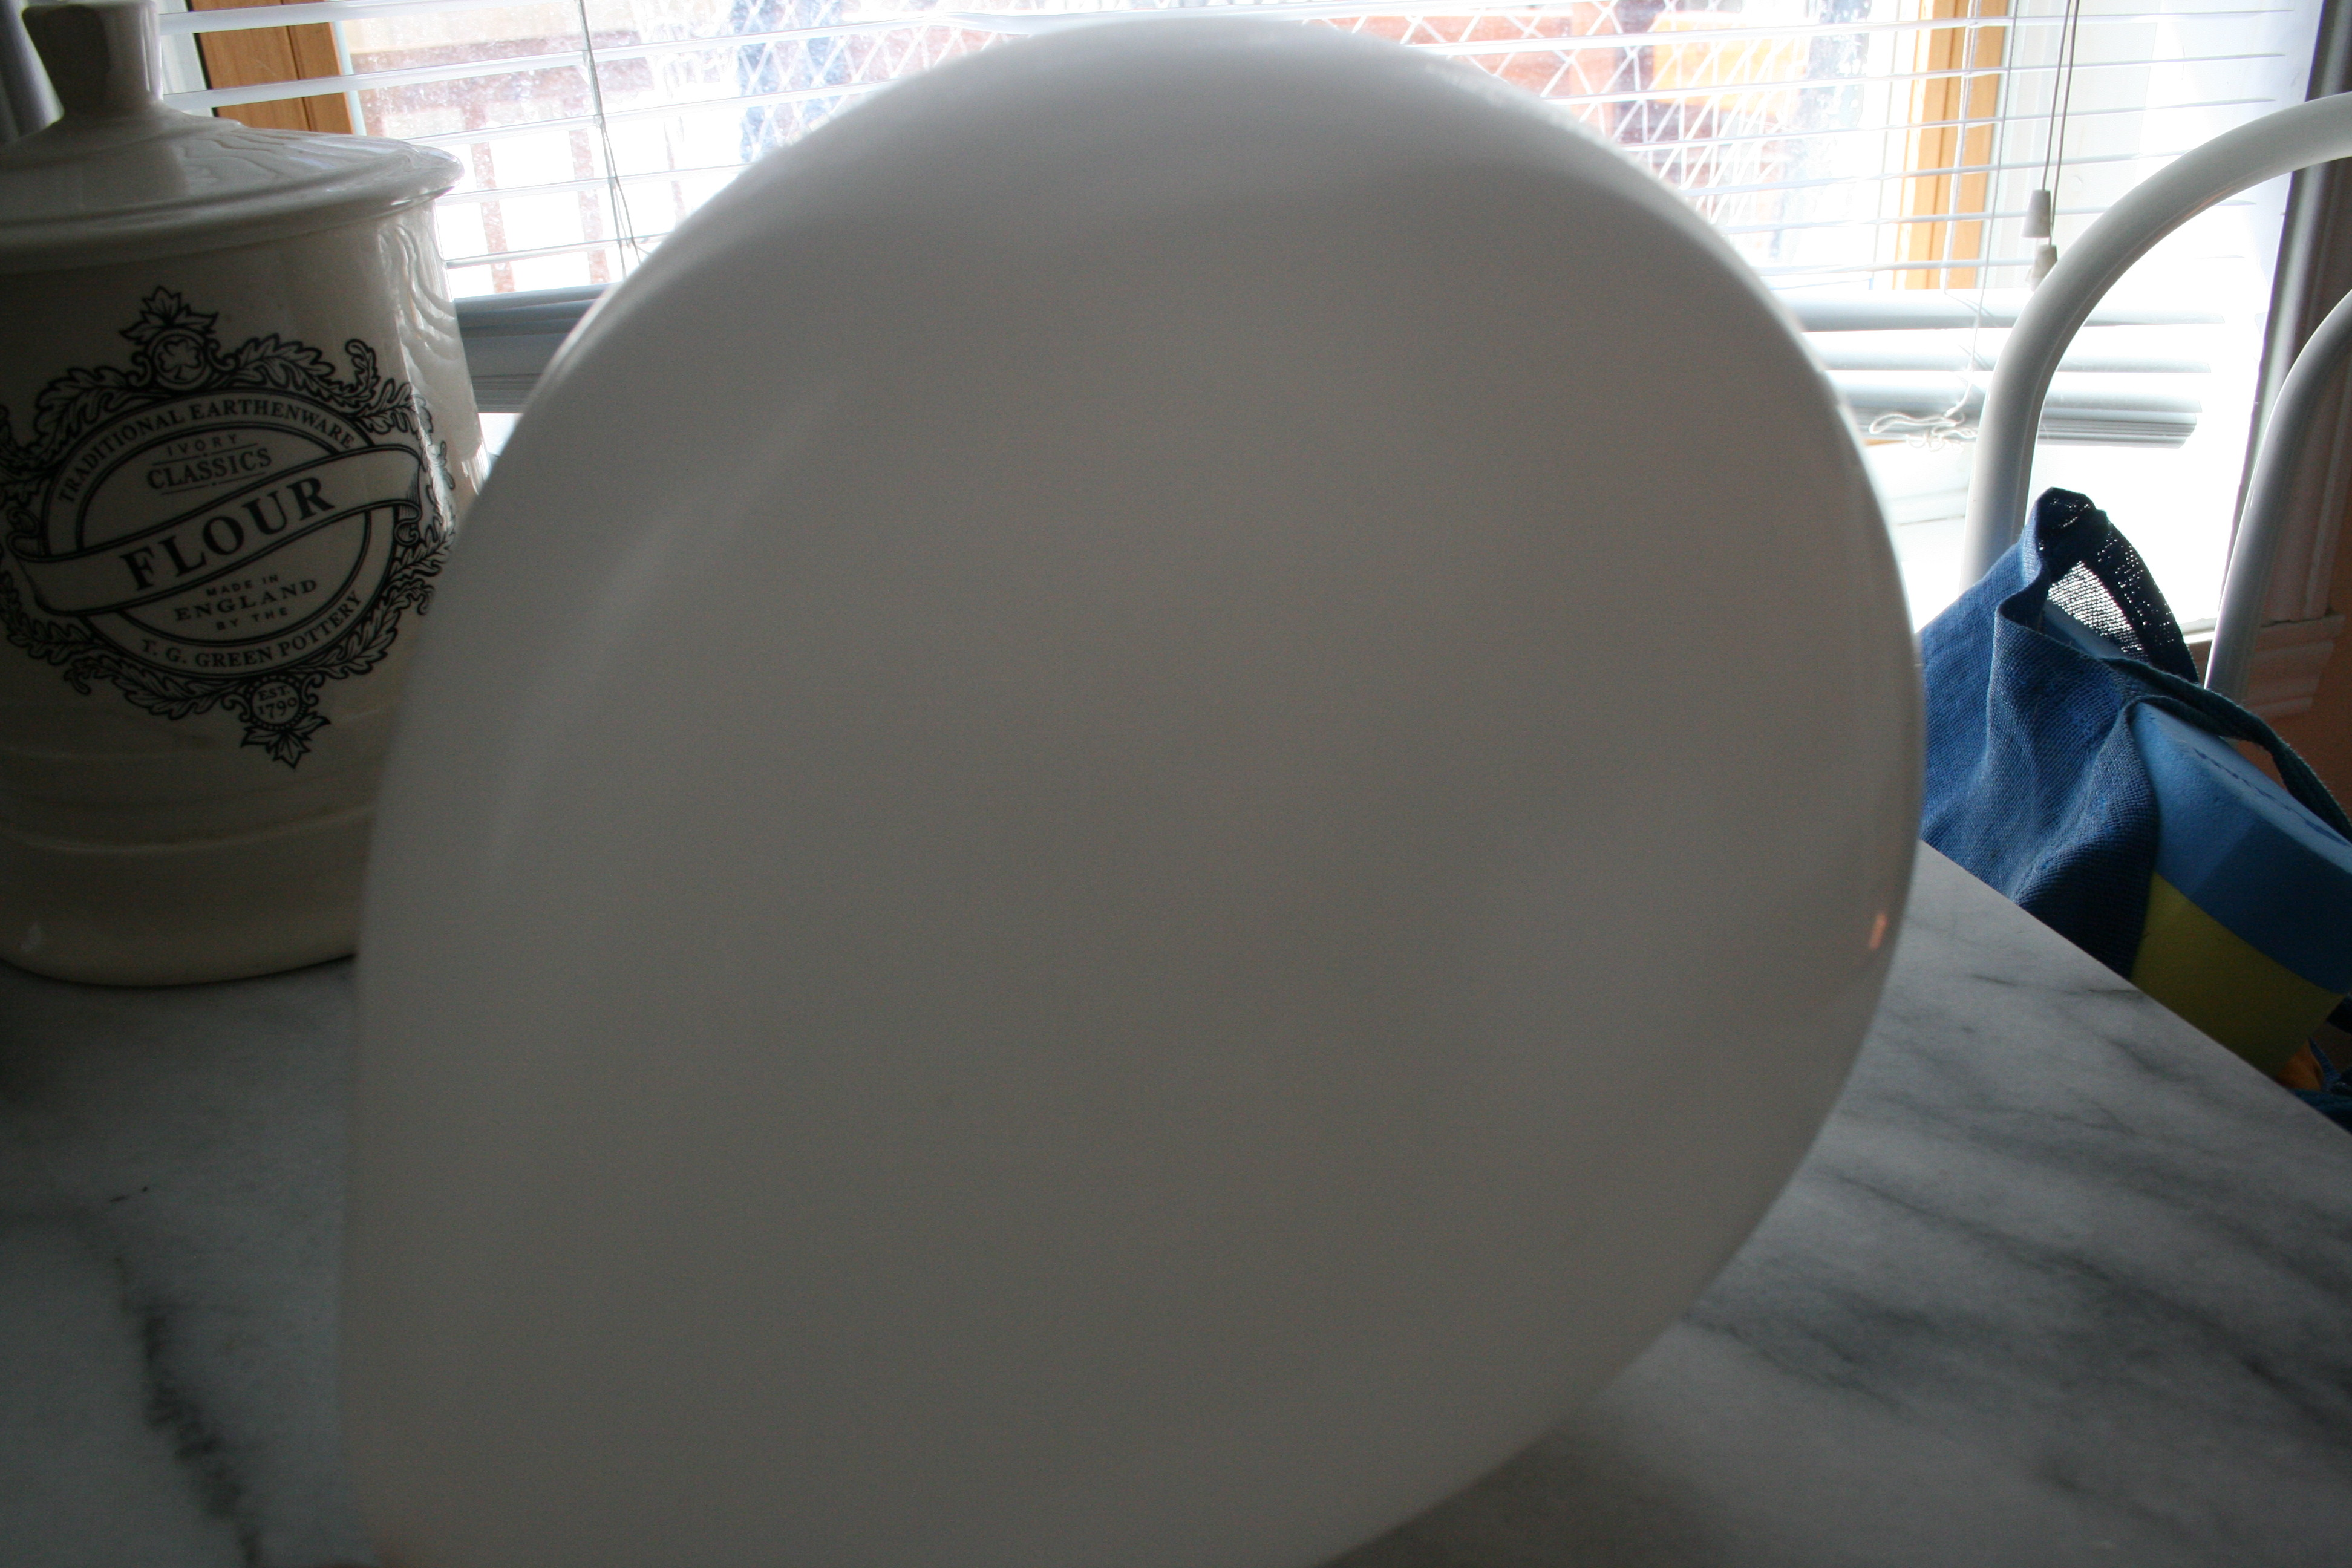 Picture of Stretch the Balloon